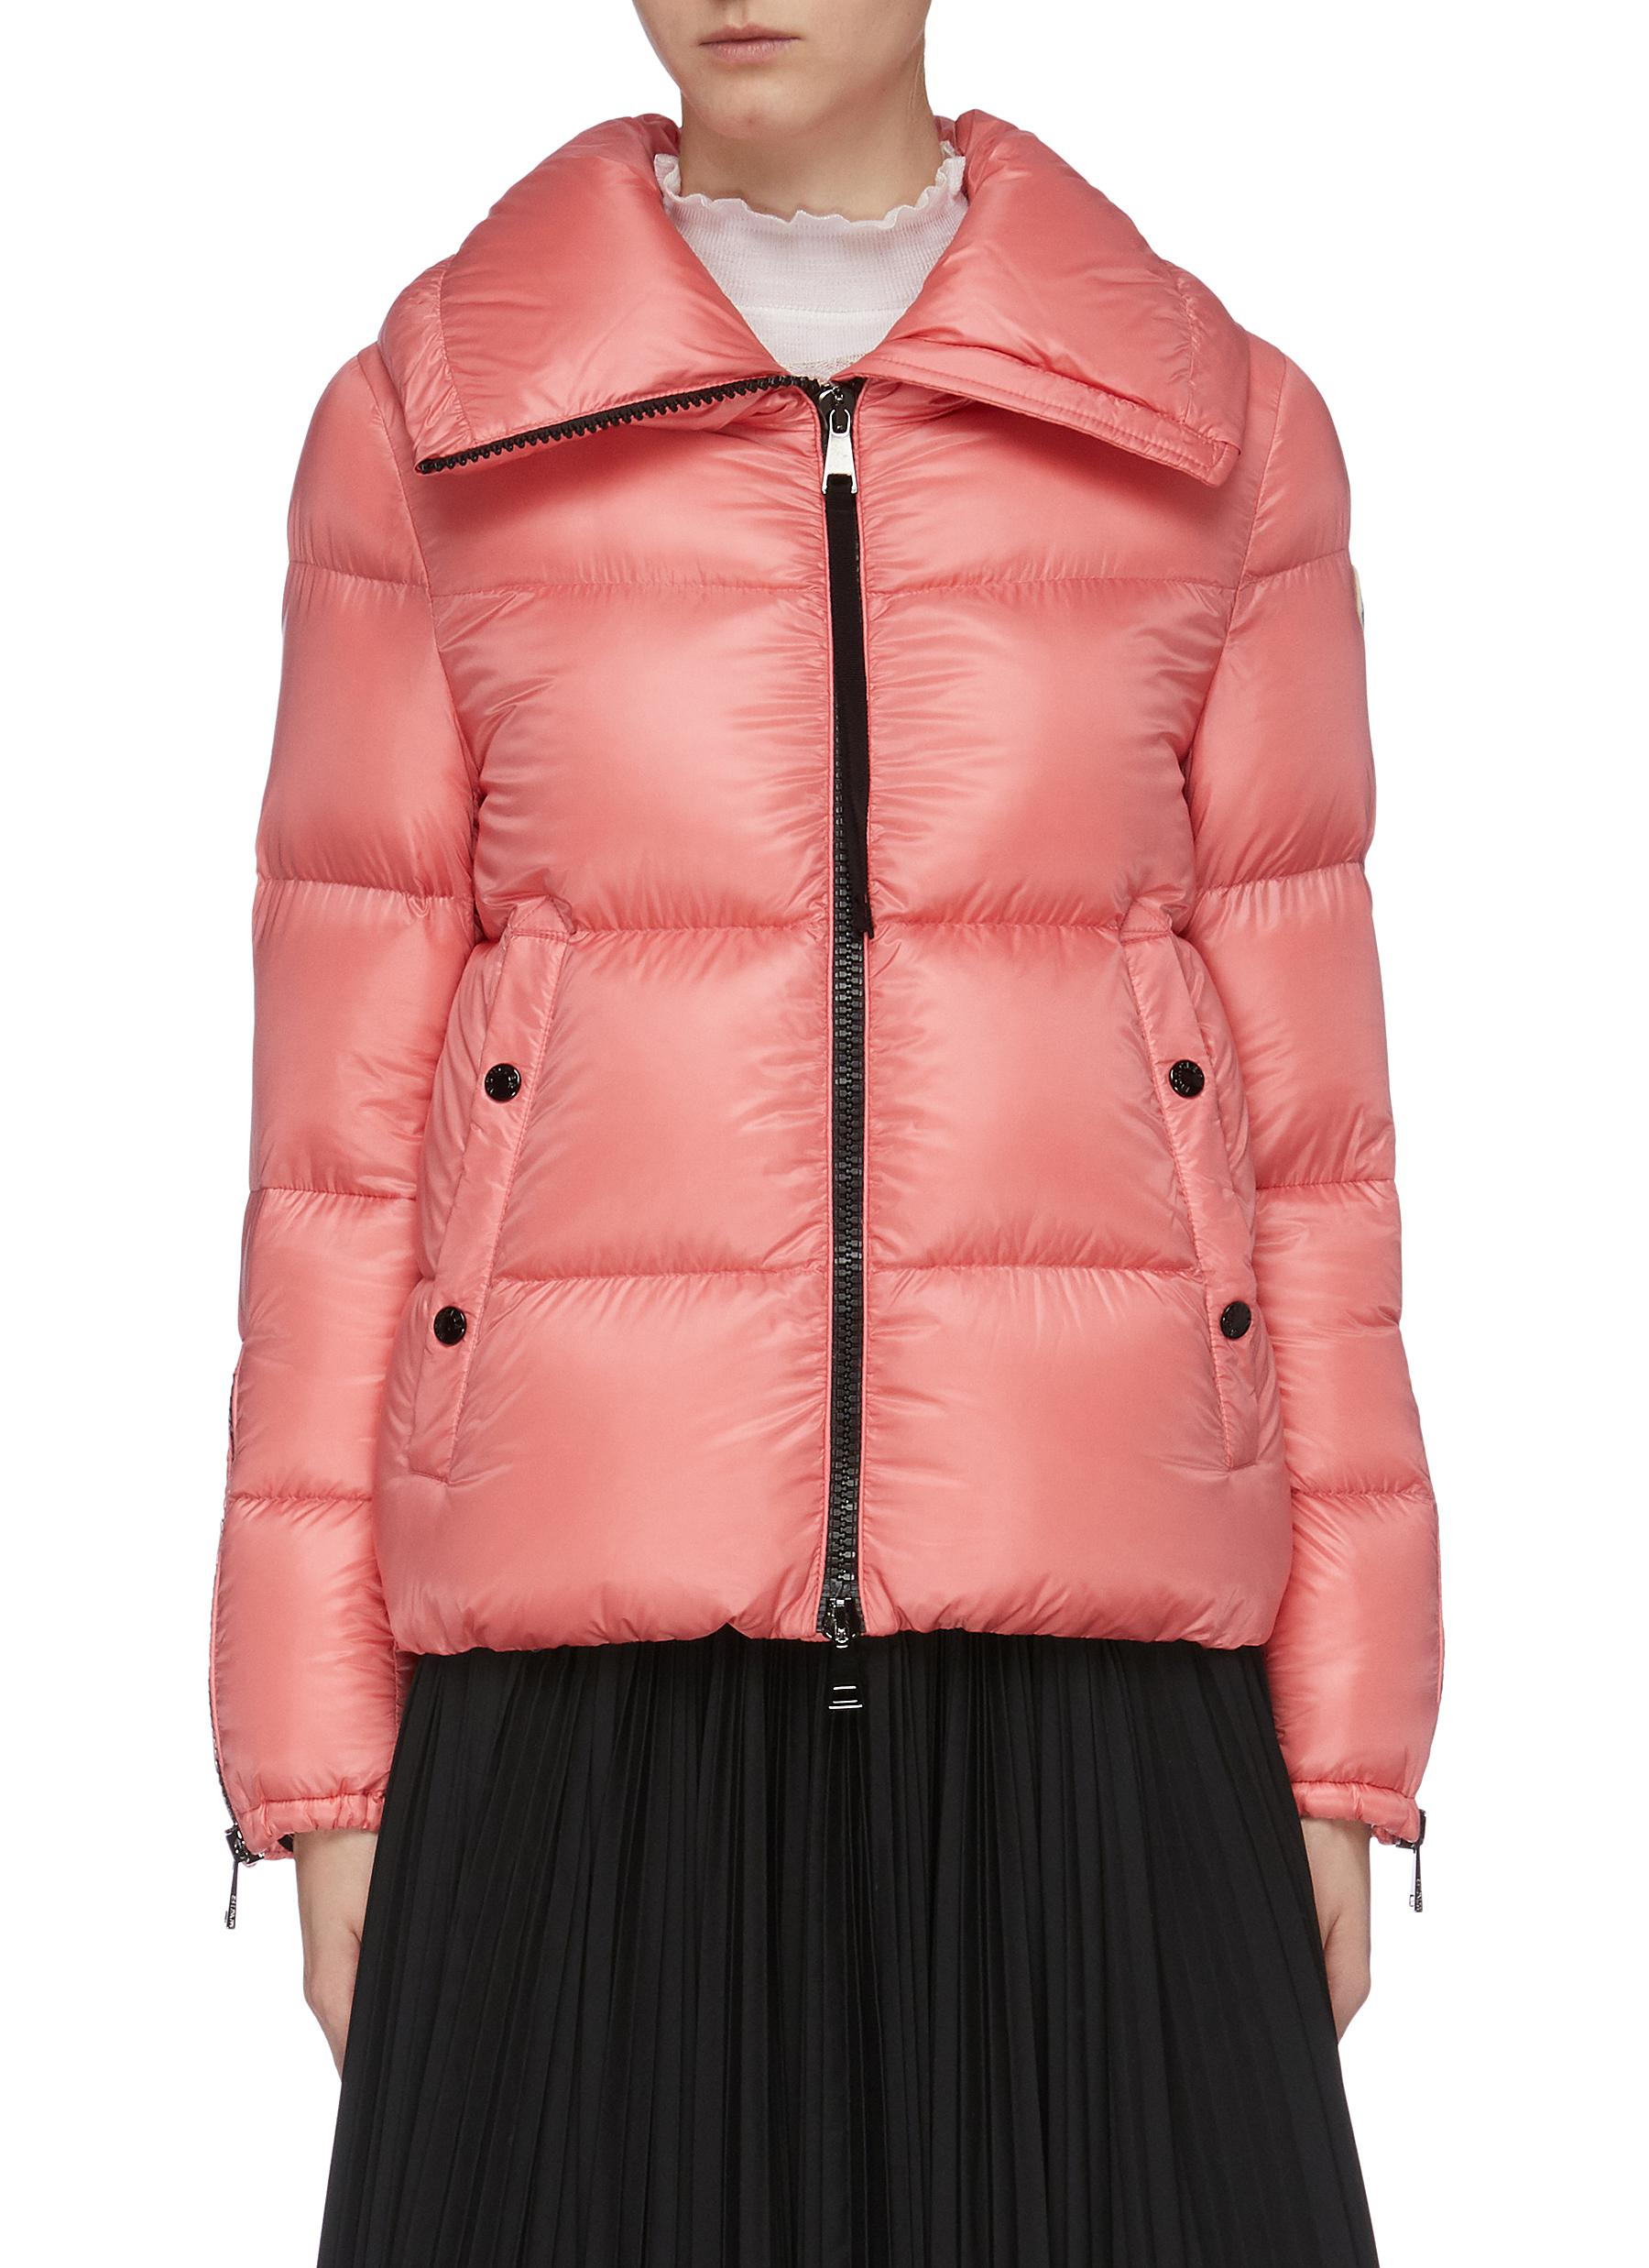 Zip gusset sleeve down puffer jacket by Moncler